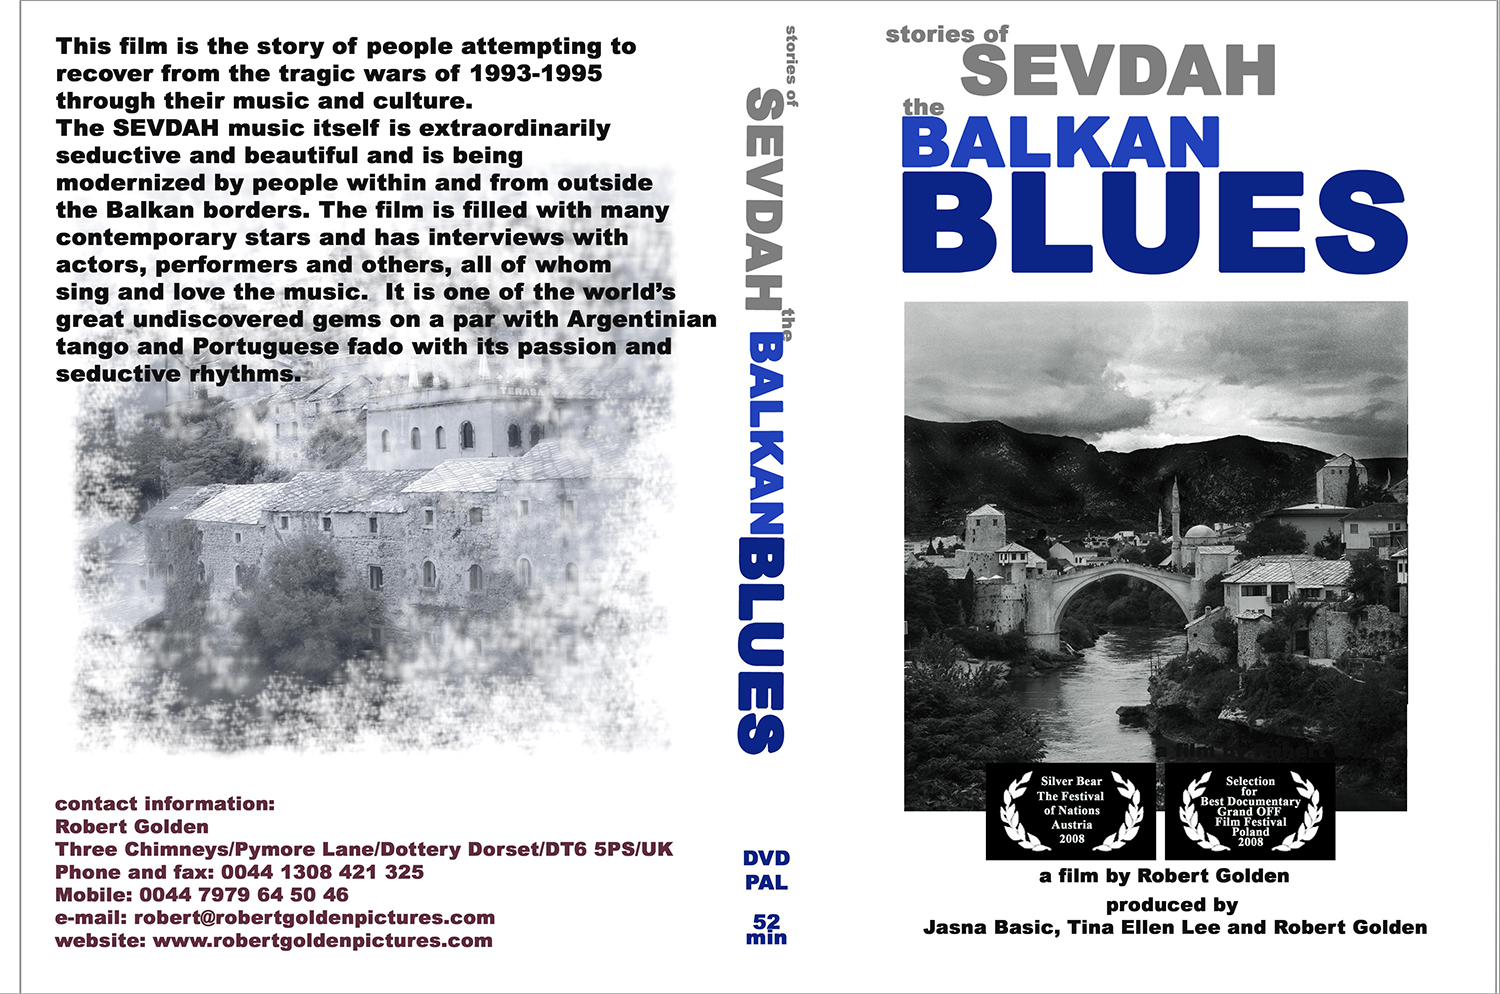 - STORIES OF SEVDAH - THE BOSNIAN BLUES is a highly emotional film about the Bosnian music called Sevdah (which means 'love' in Turkish). It tells the story of how, after the Bosnian War of 1992-1995 and the tragic genocide in Srebrenica (July 1995) exponents of this poetic music held onto it, sang, played and performed it, to make sense of their culture and the world that had created the horror of the war. You can see the trailer here, and the film soon to be uploaded here as well.